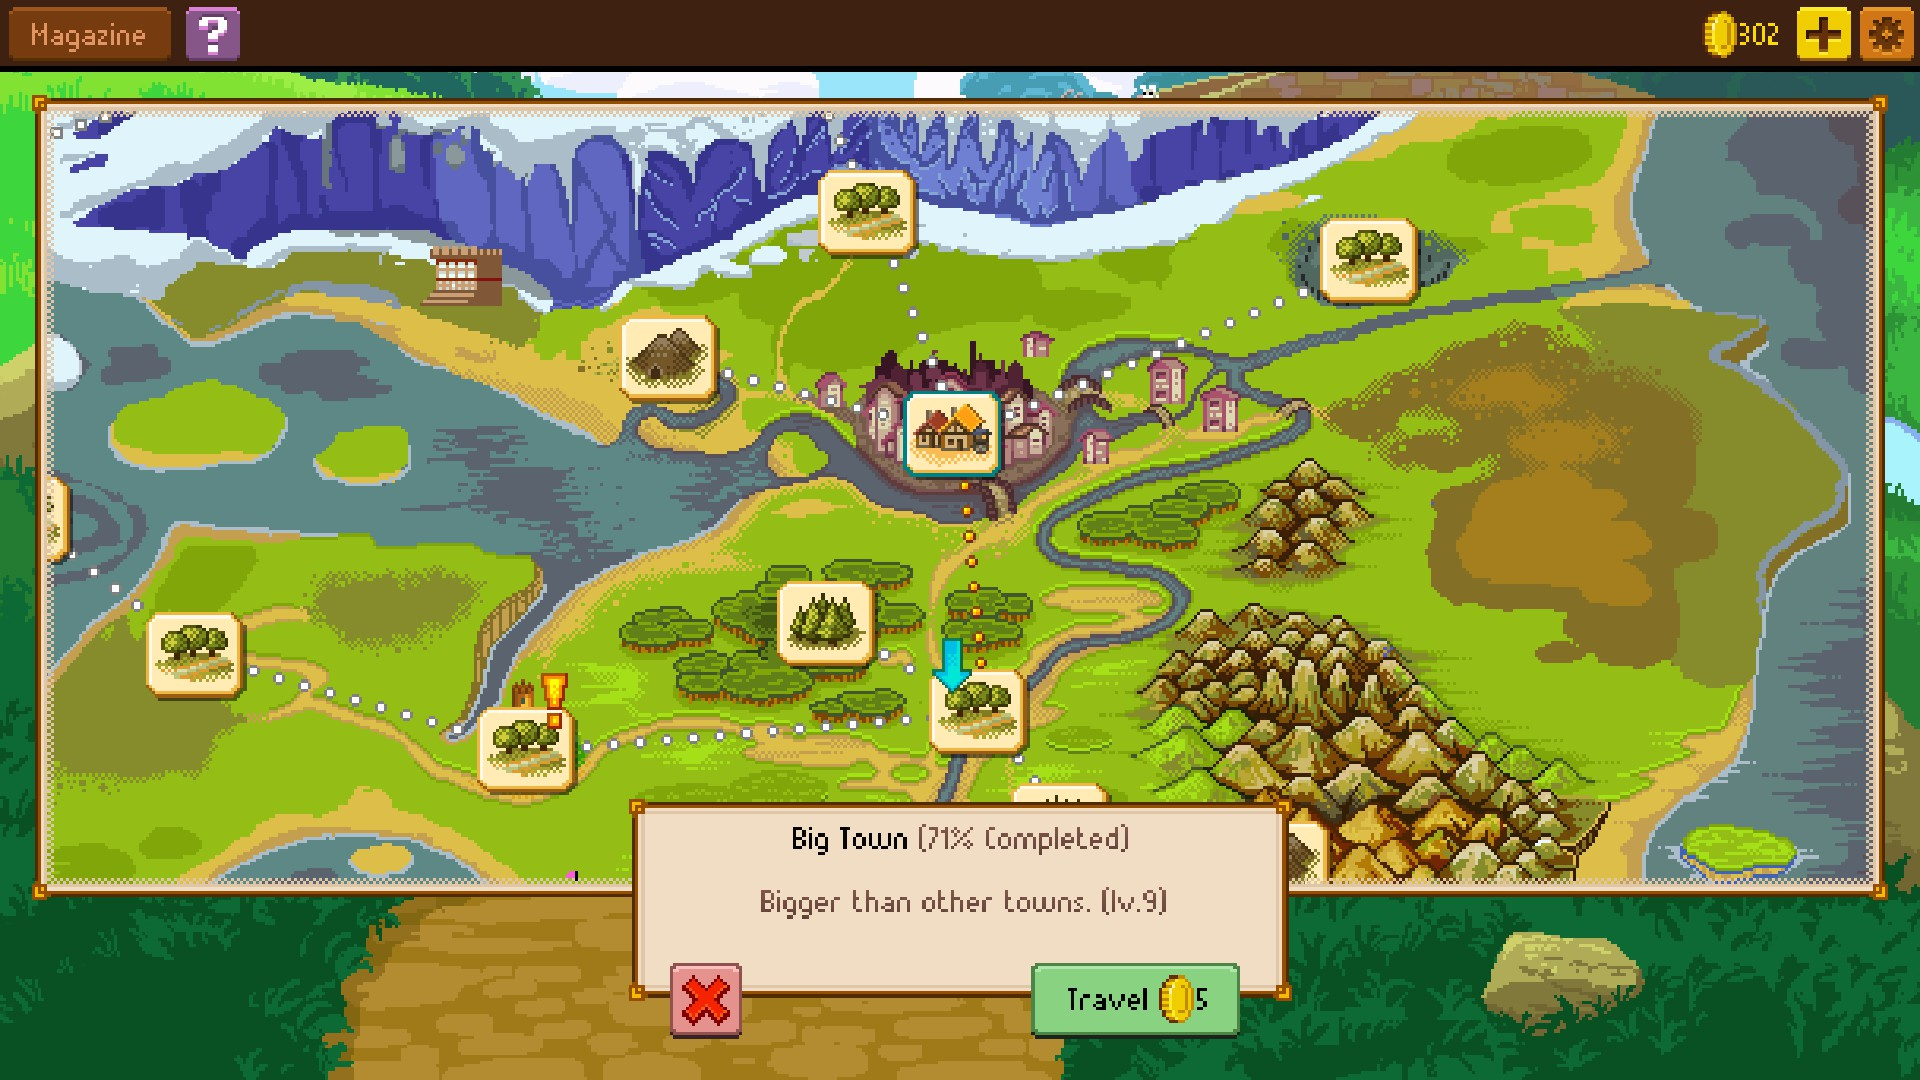 Knights of pen and paper 2 pc release trailer gamegrin knights of pen and paper 2 pc release trailer gamegrin sciox Gallery